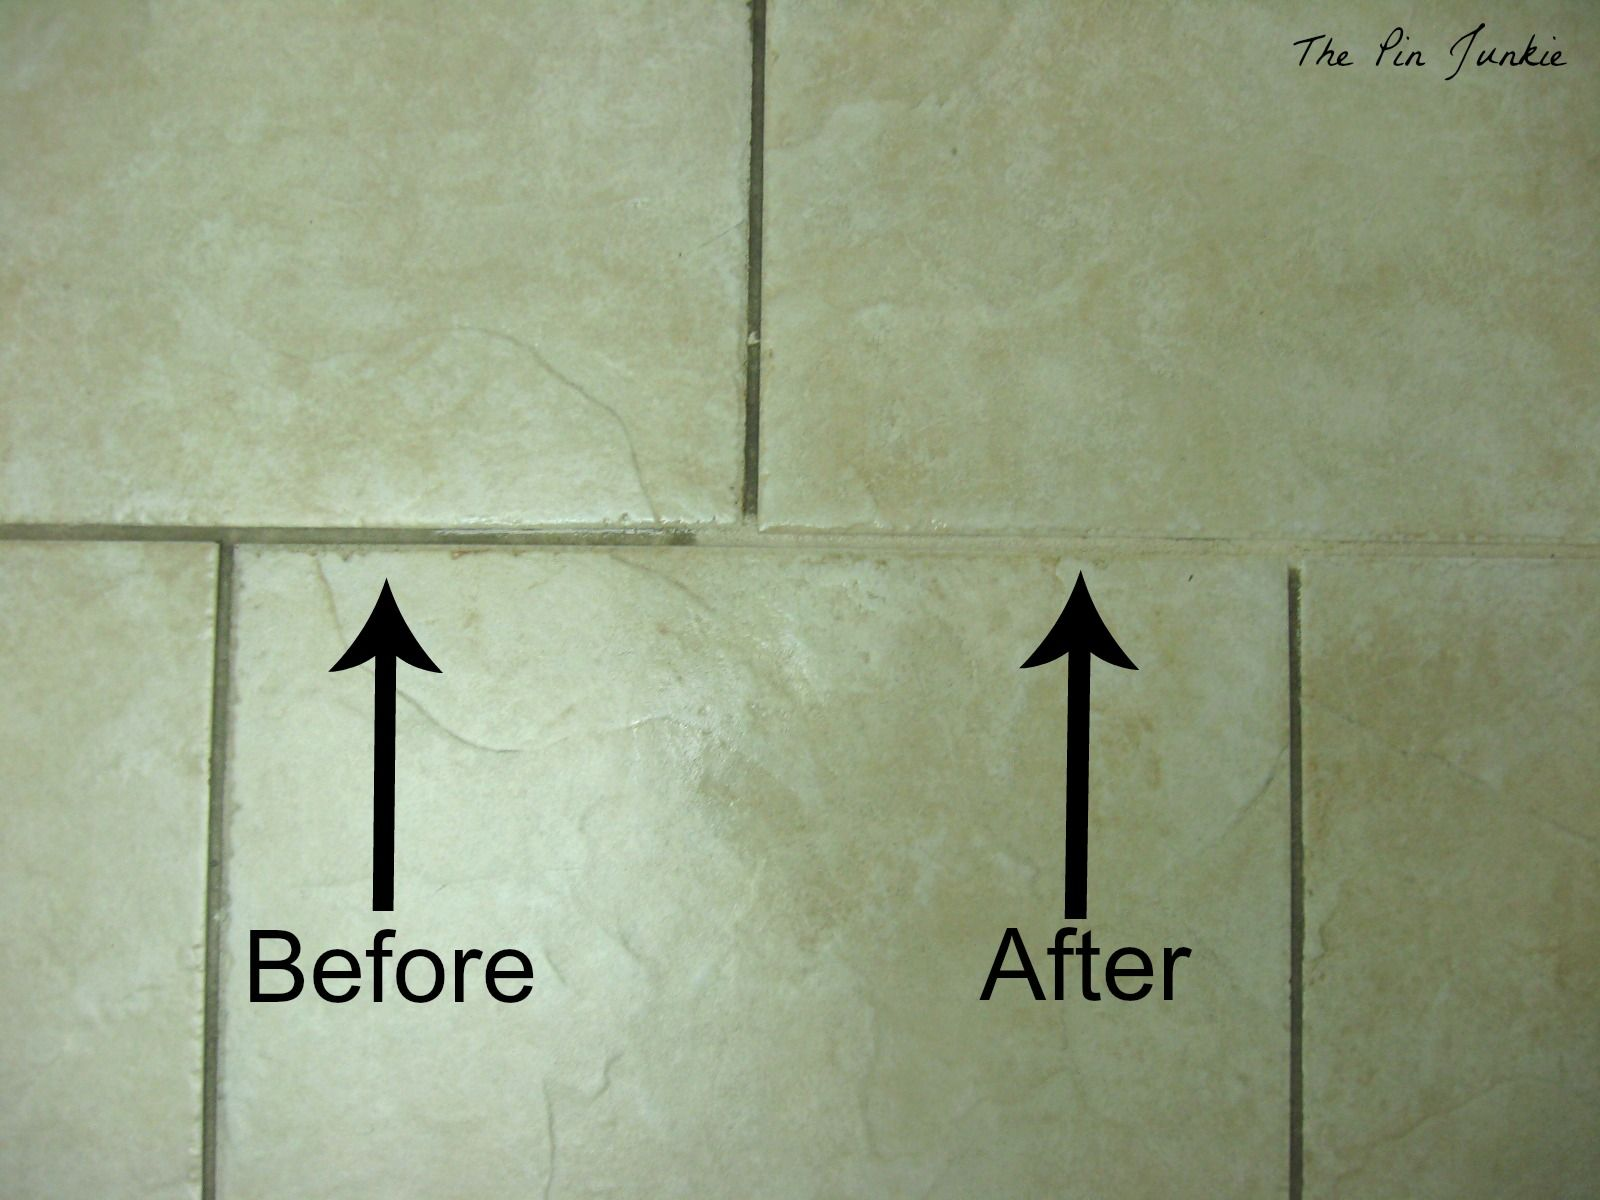 How to clean tile grout tile grout grout and tile grout cleaning tile grout cleaner speed clean your dirty tile grout with the 3 hydrogen peroxide dailygadgetfo Images